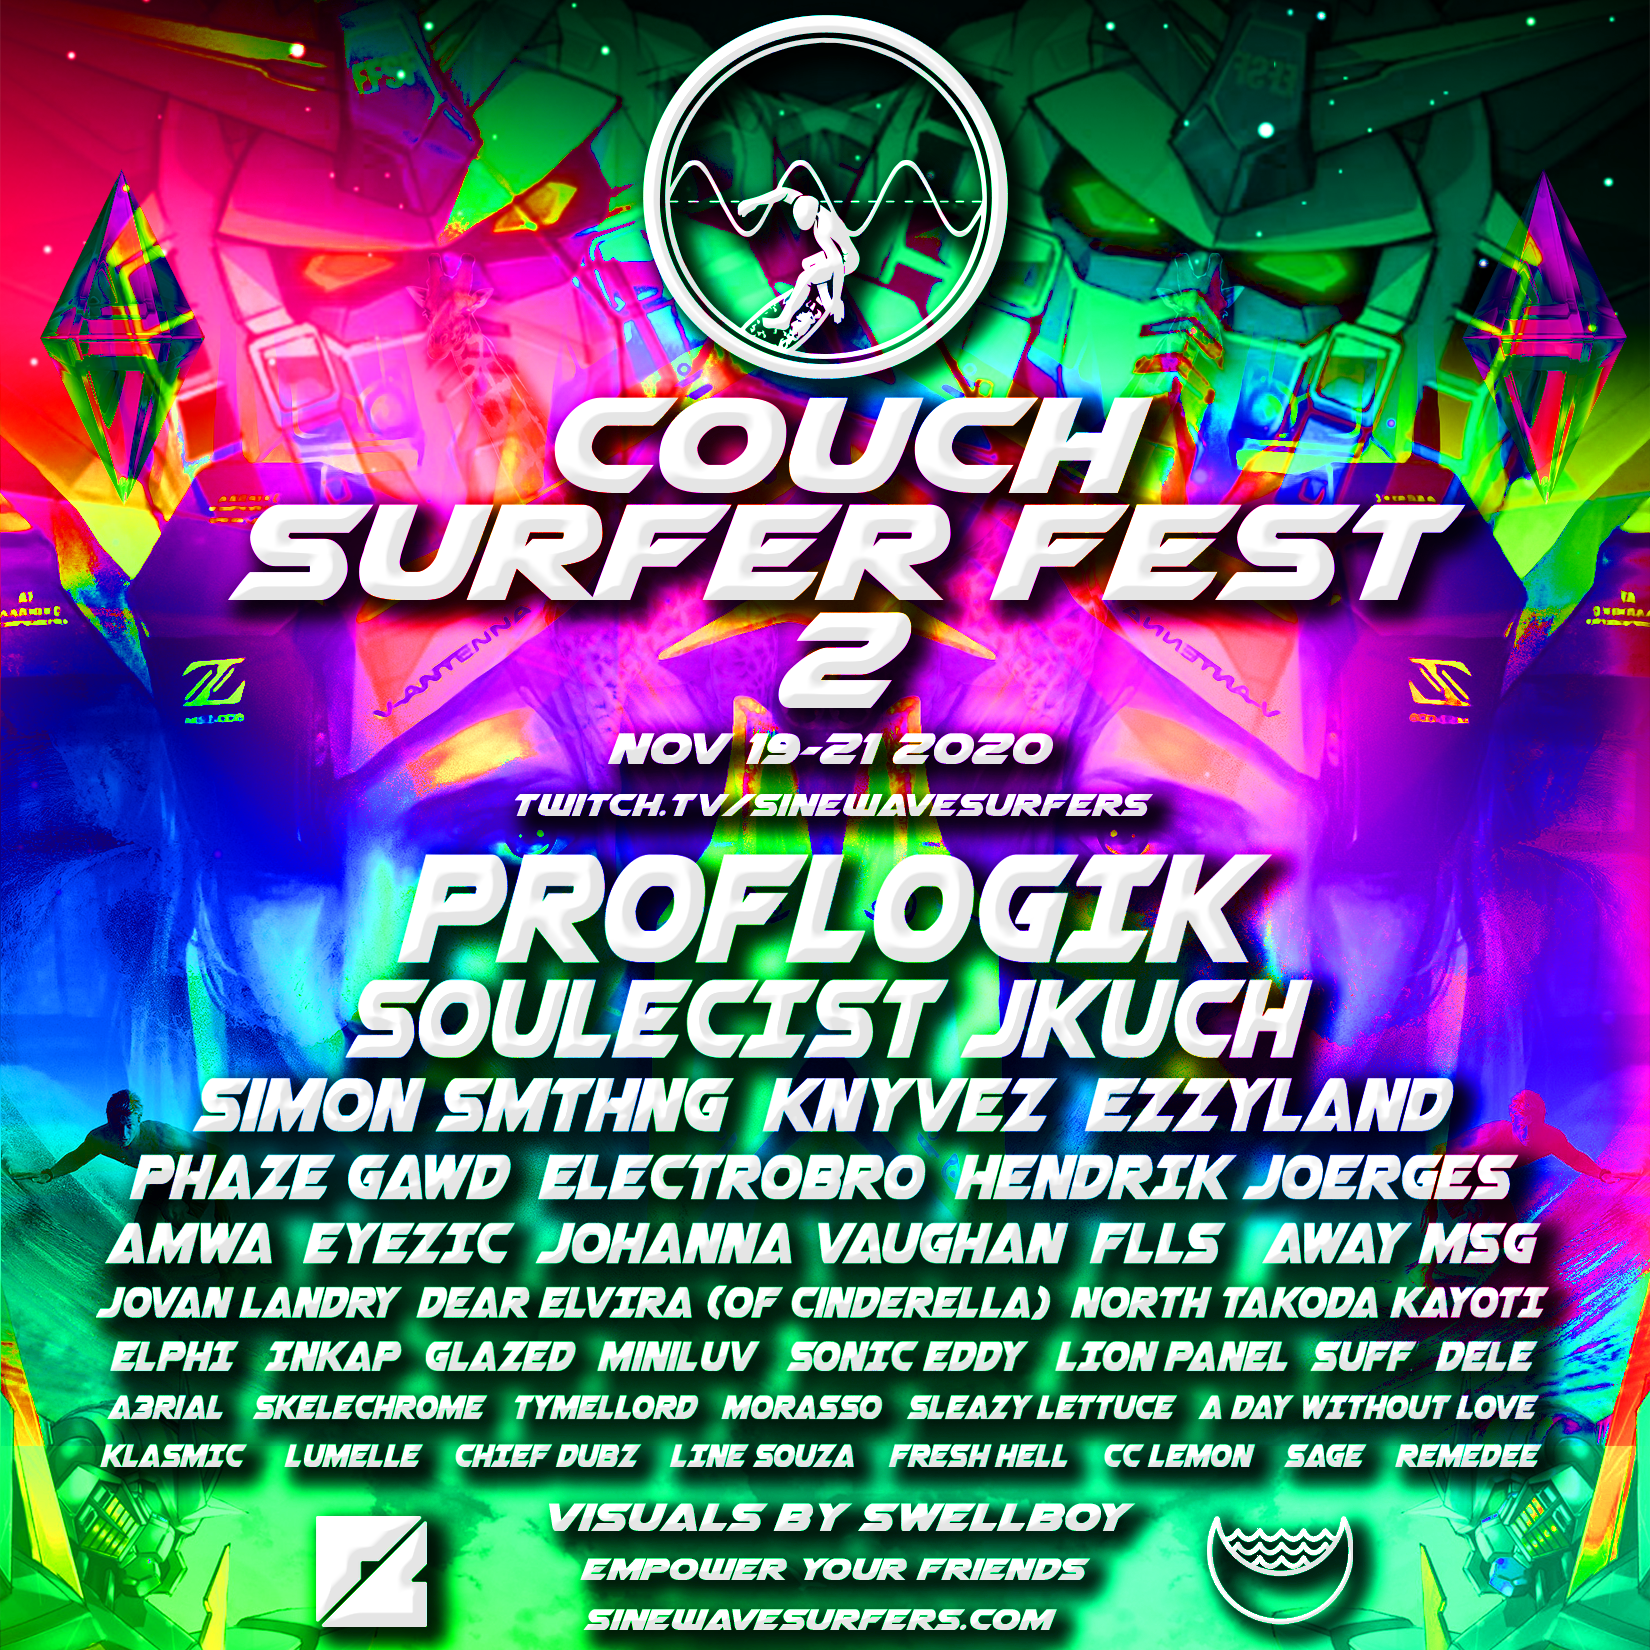 COUCH SURFER FESTIVAL 2 [Nov. 19-21]